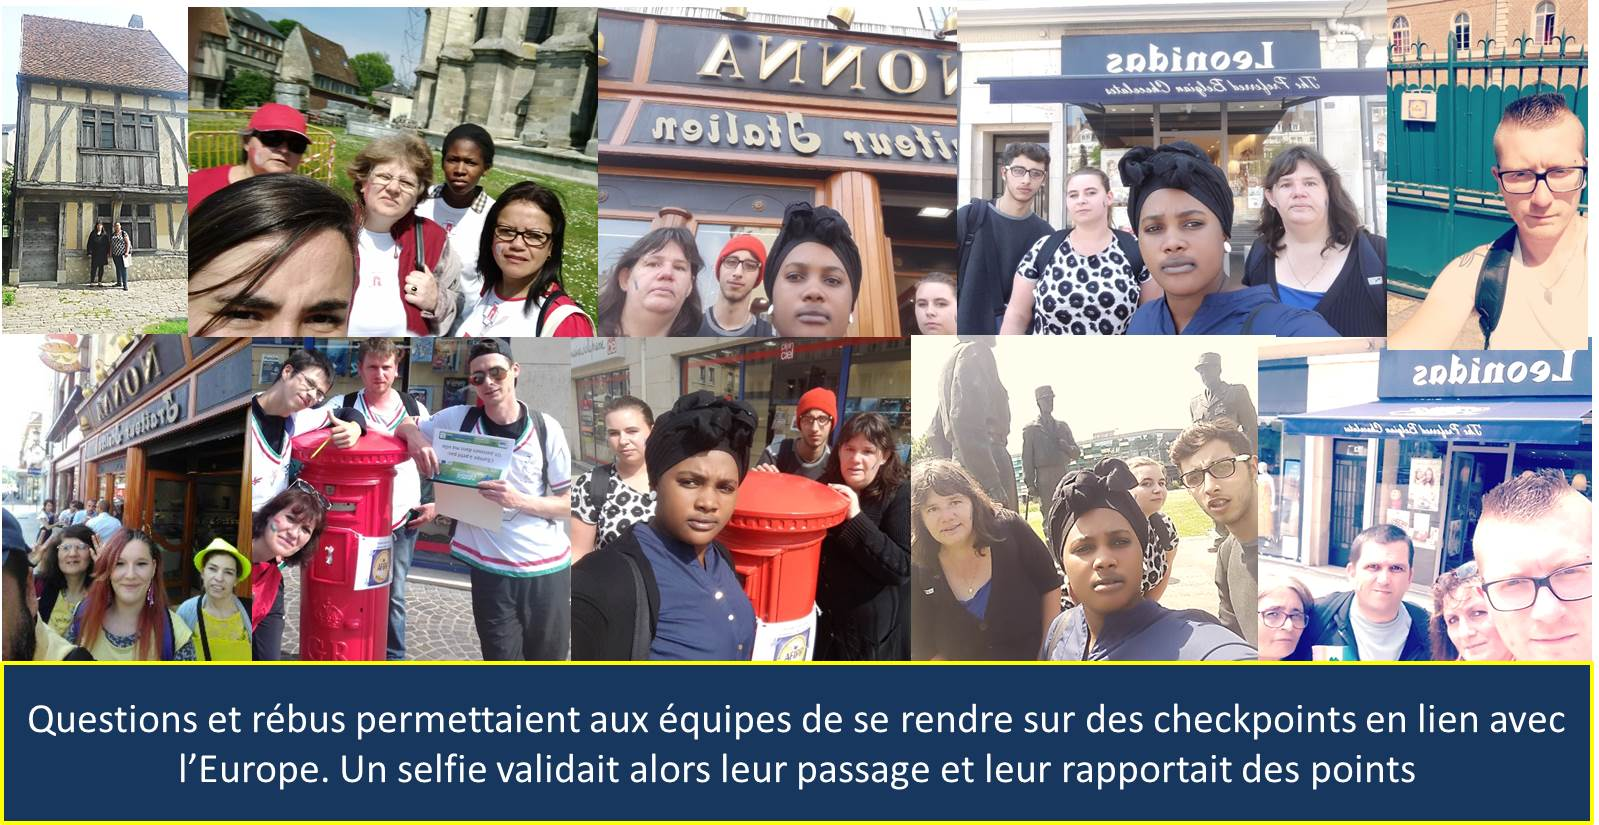 Checkpoints et selfies